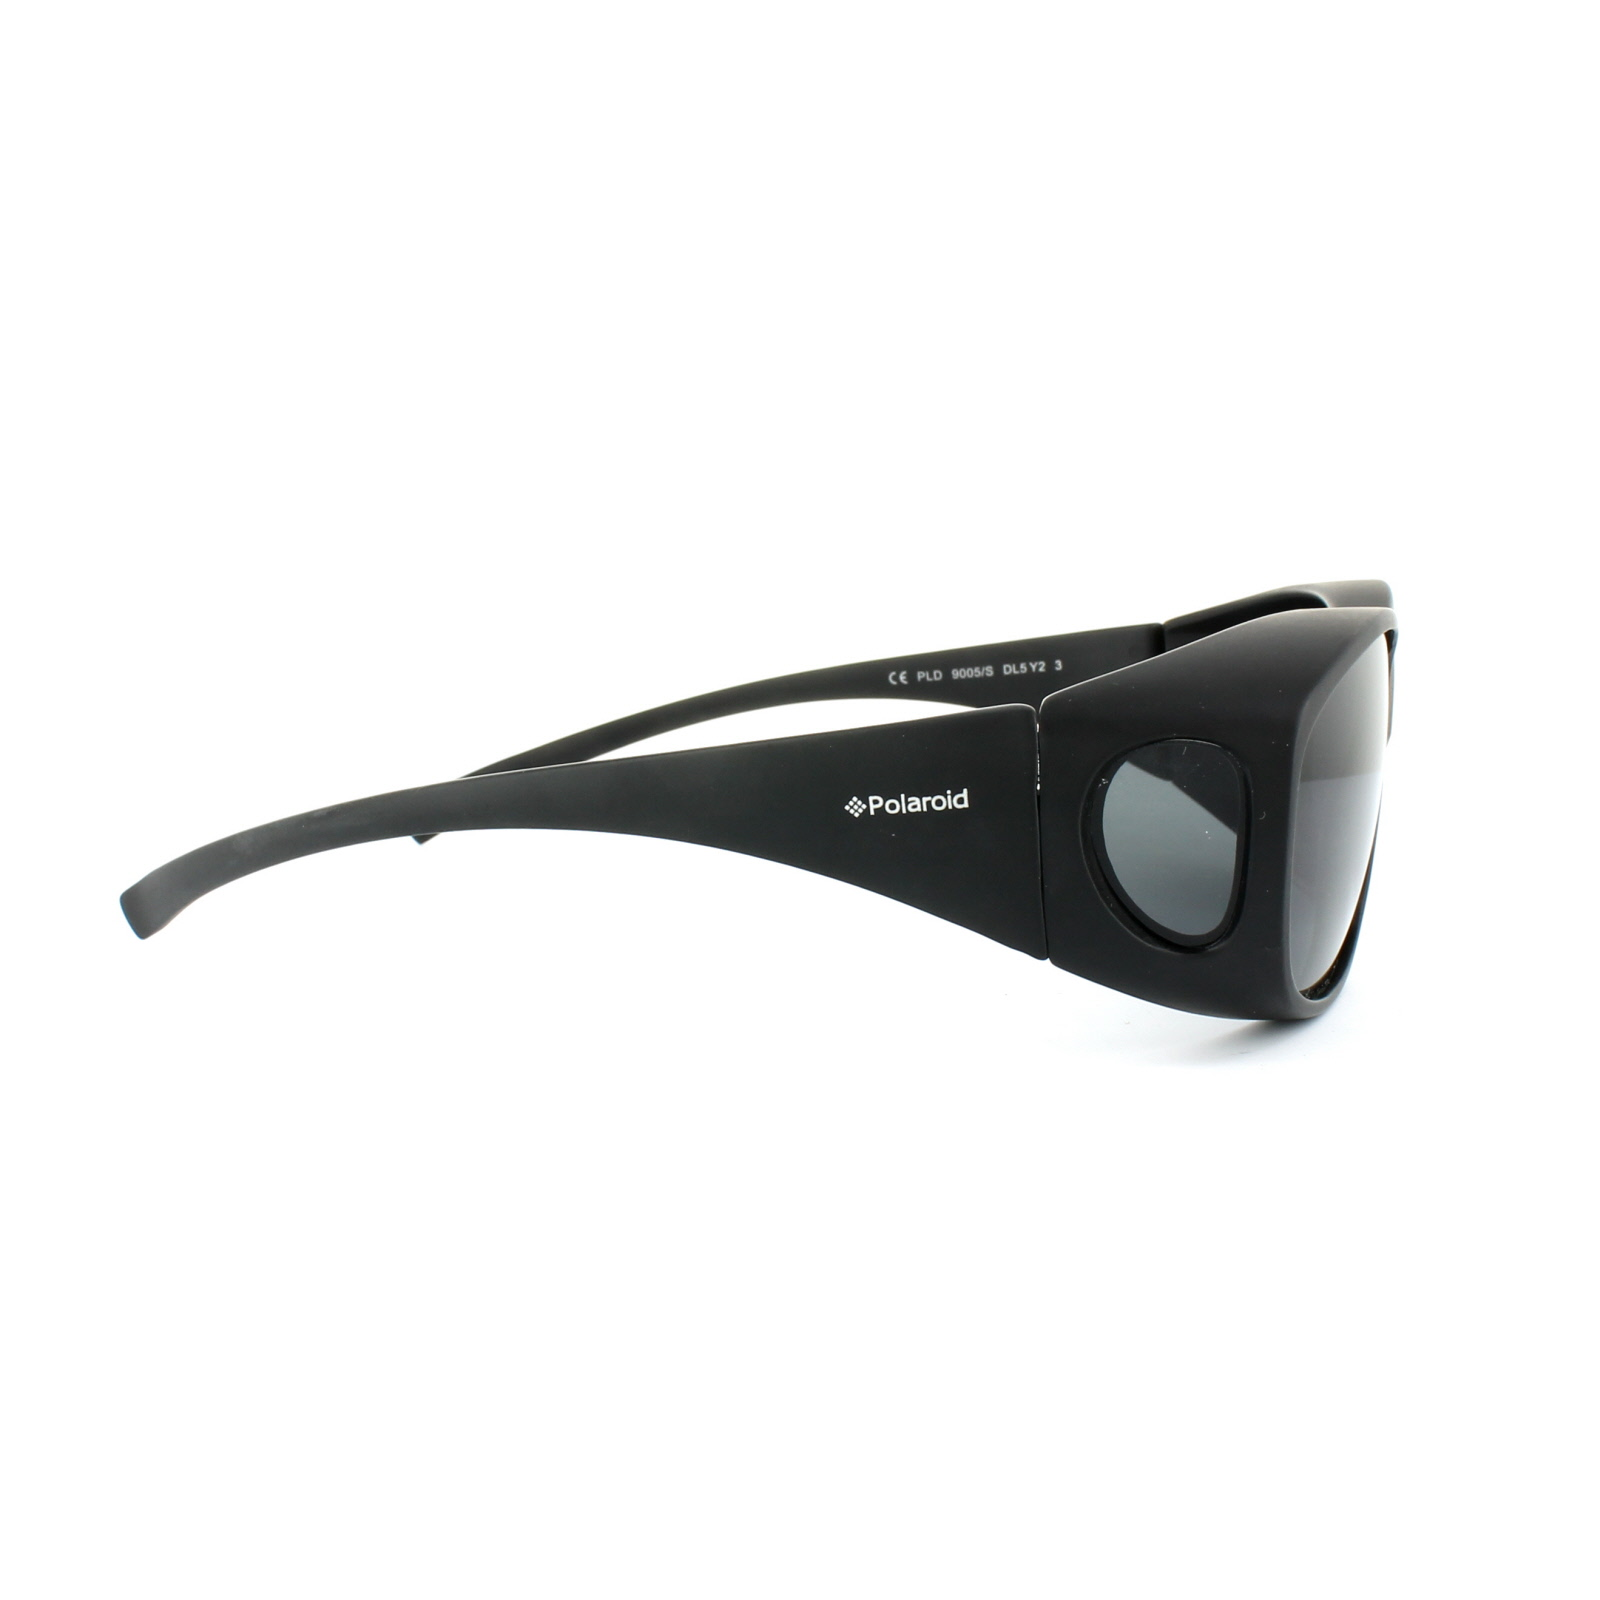 0346d9801f Cheap Polaroid Suncovers Fitover 9005 S Sunglasses - Discounted ...